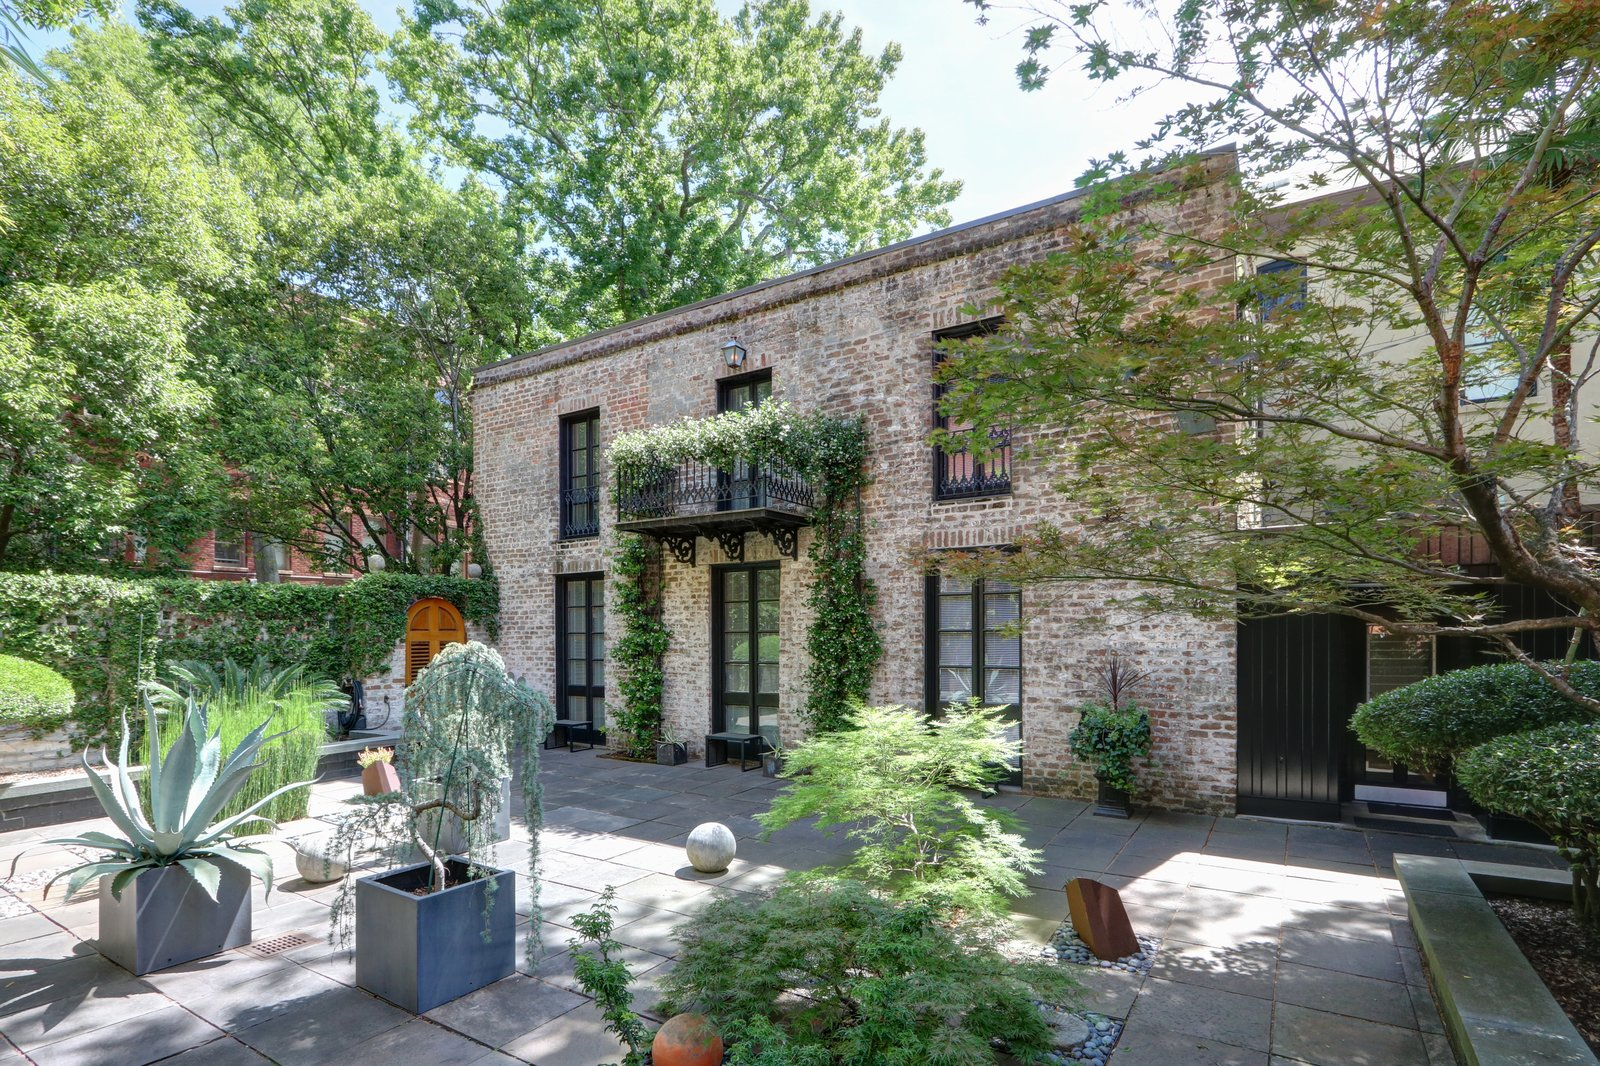 Outdoor, Side Yard, Stone Patio, Porch, Deck, Pavers Patio, Porch, Deck, Hardscapes, Trees, and Stone Fences, Wall Large, meticulously landscaped courtyard  The Hill Gowdy House